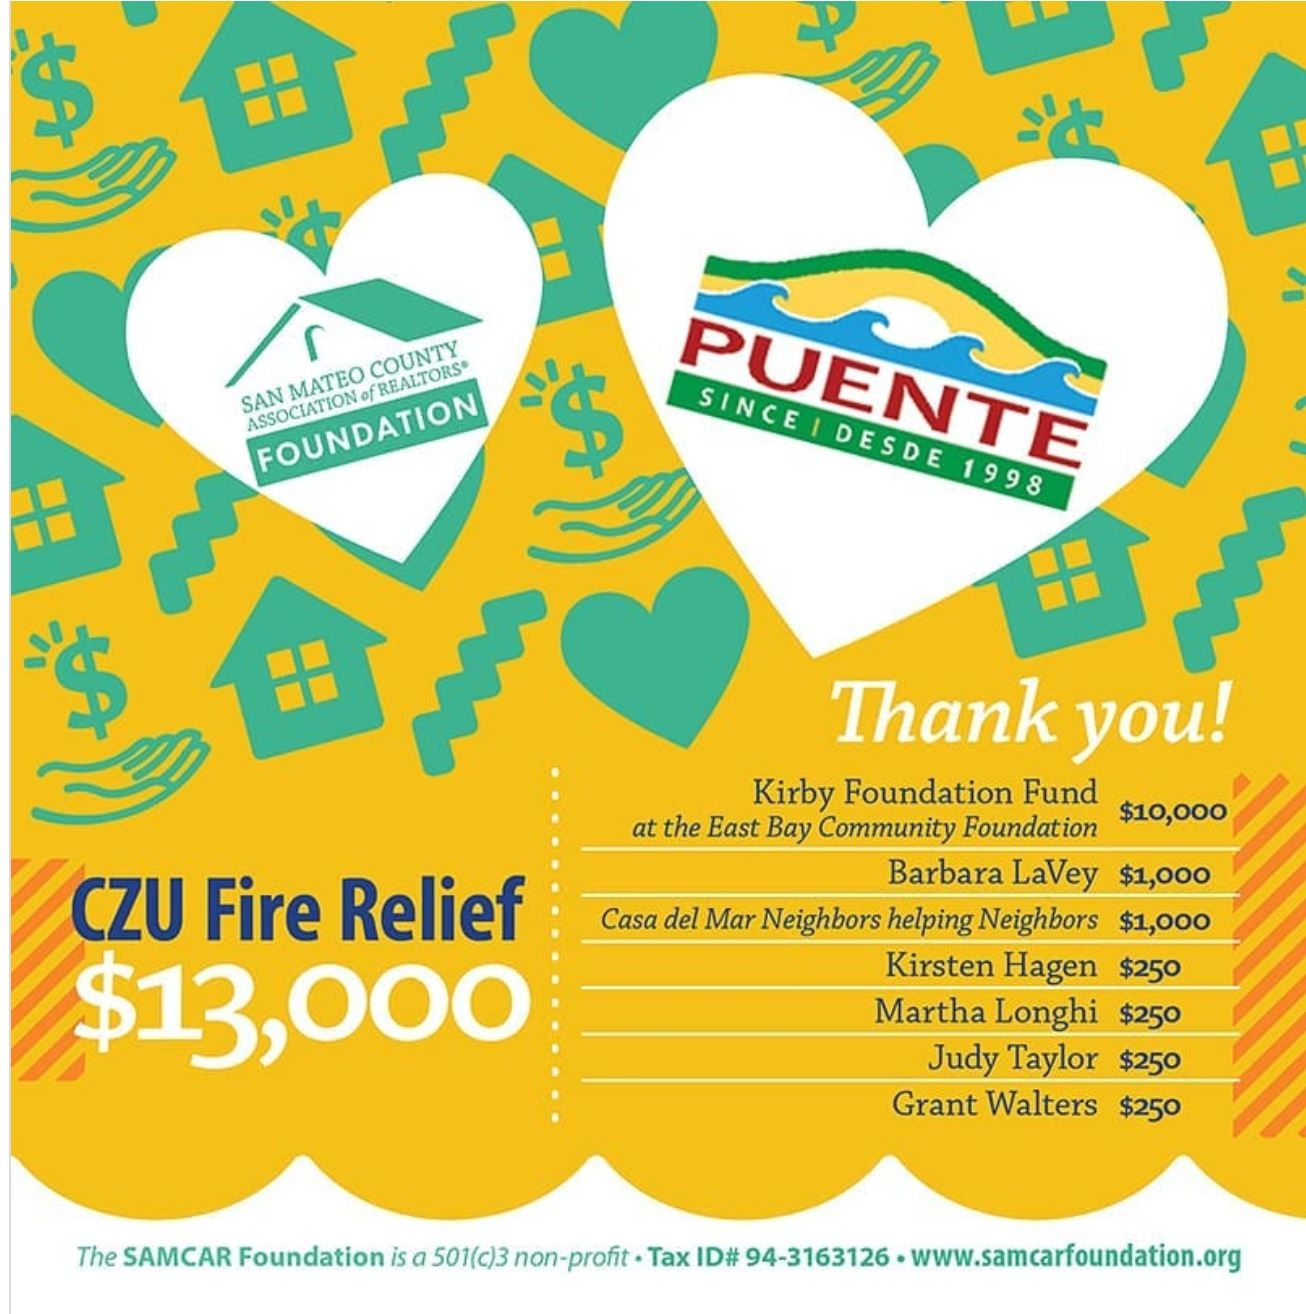 CZU Fire Relief Fund